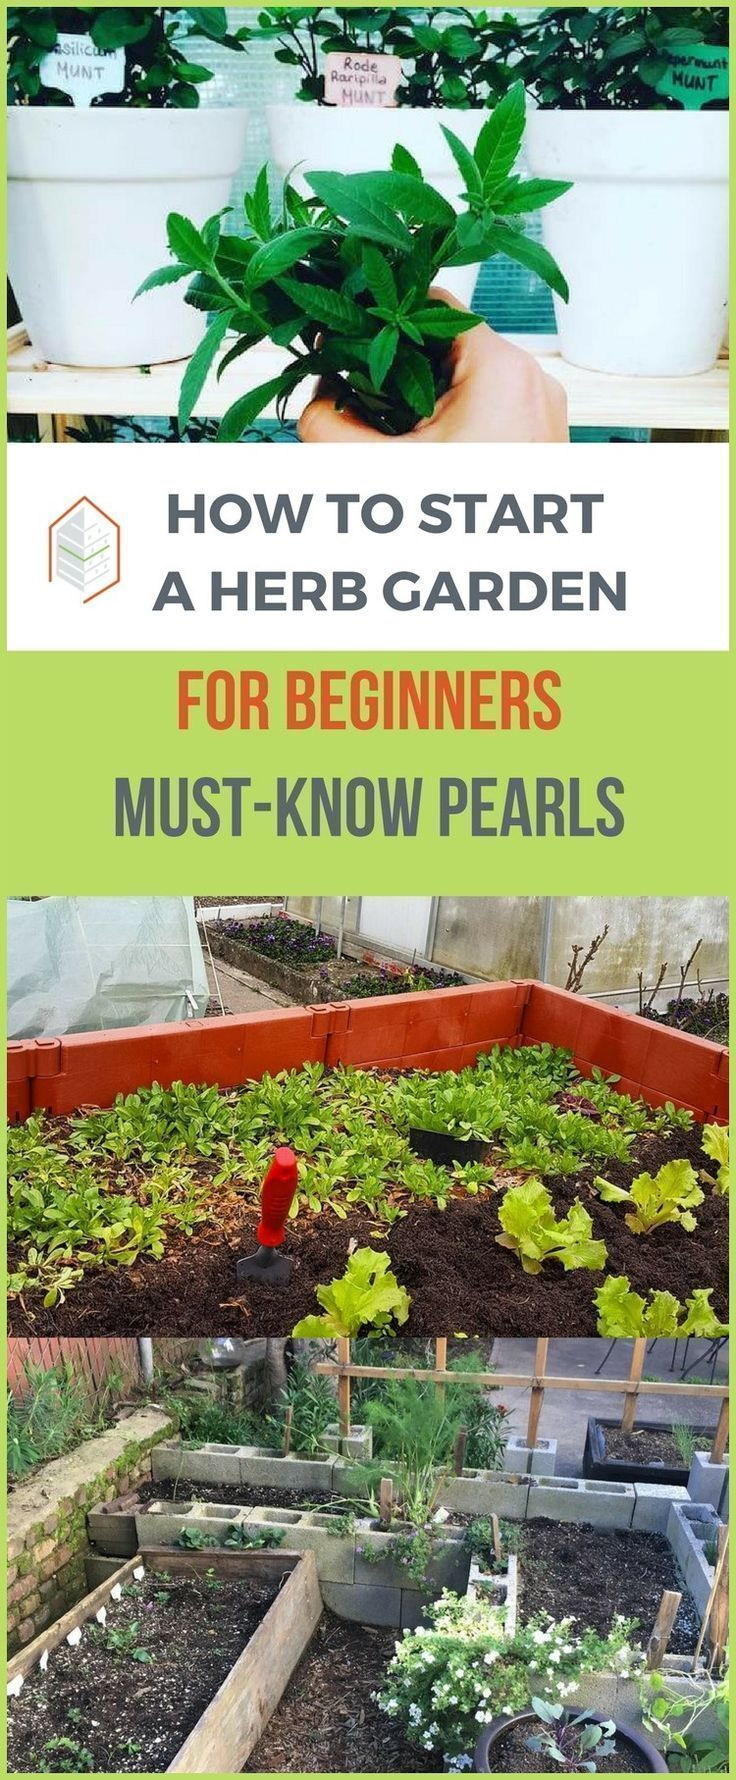 How To Start An Herb Garden For Beginners Must Know Pearls It S Easy Herbs Grow With Light Sunshine